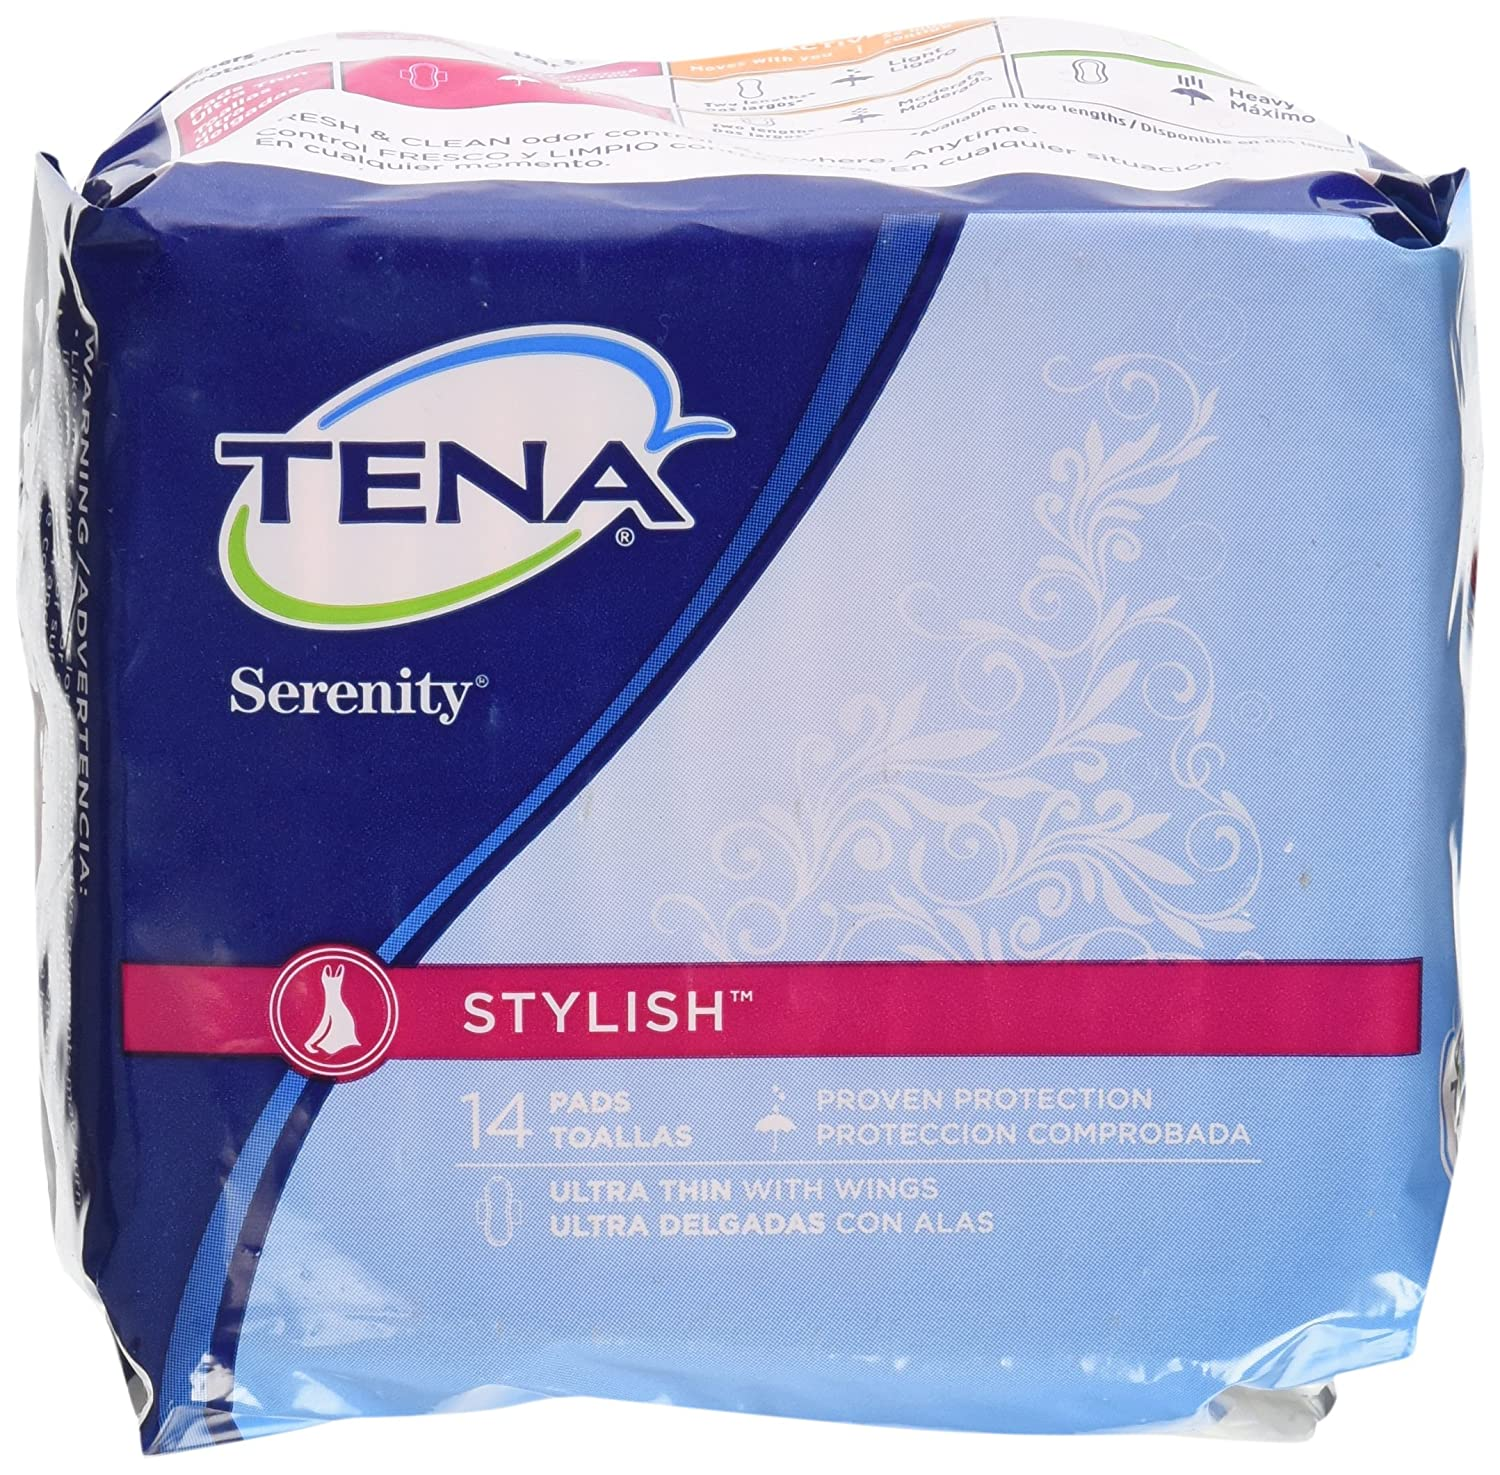 Amazon.com: Tena Serenity Stylish Untra Thin With Wings, 14 Pads.: Health & Personal Care